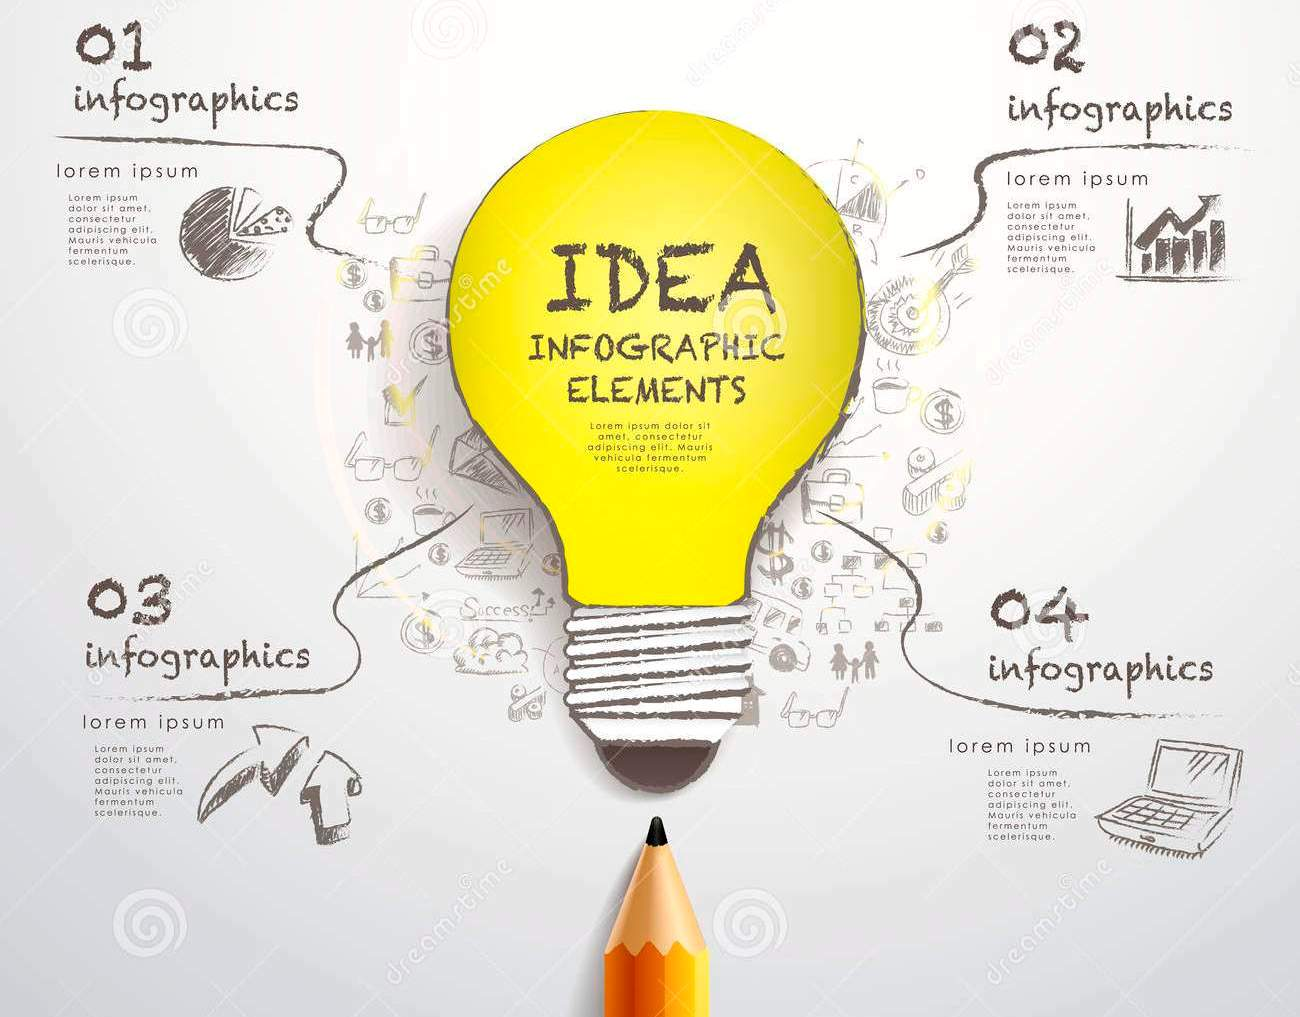 creative-pencil-hand-draw-paper-cut-bulb-infographics-template-can-be-used-banners-idea-concept-vector-40915939.jpg